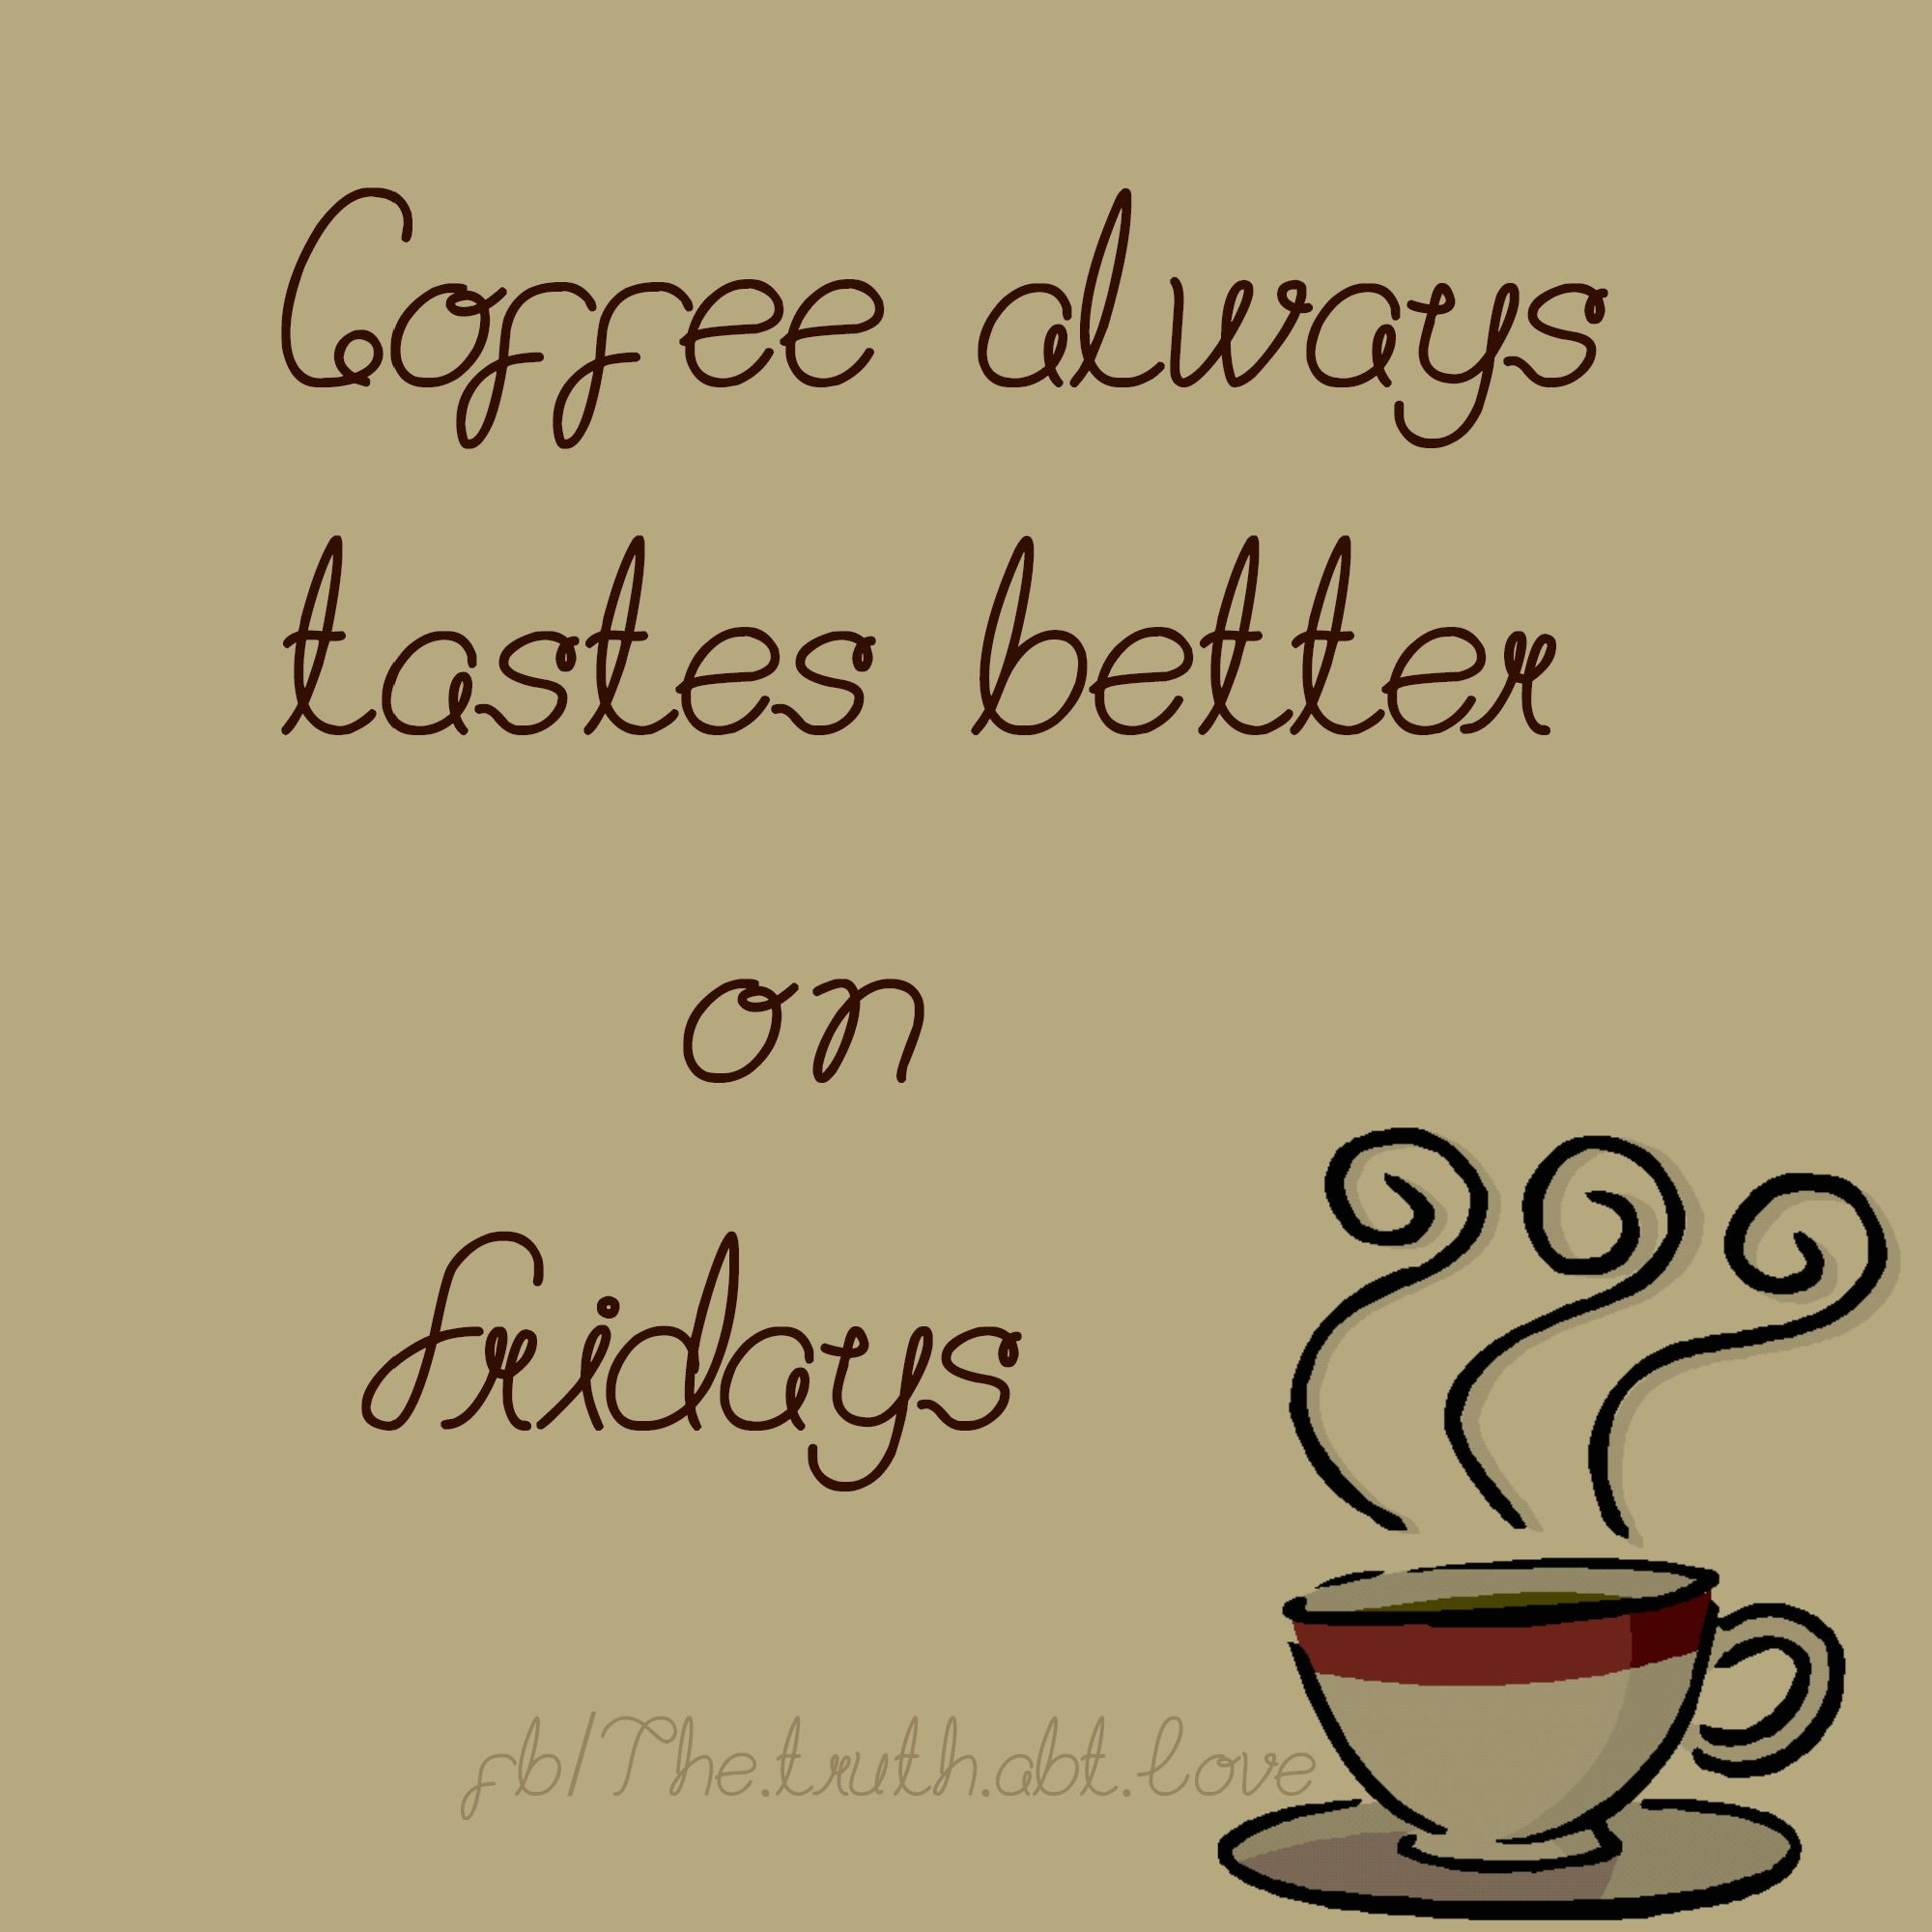 Coffee Wallpapers Quotes Coffee Images Pics: Friday Coffee Quotes. QuotesGram